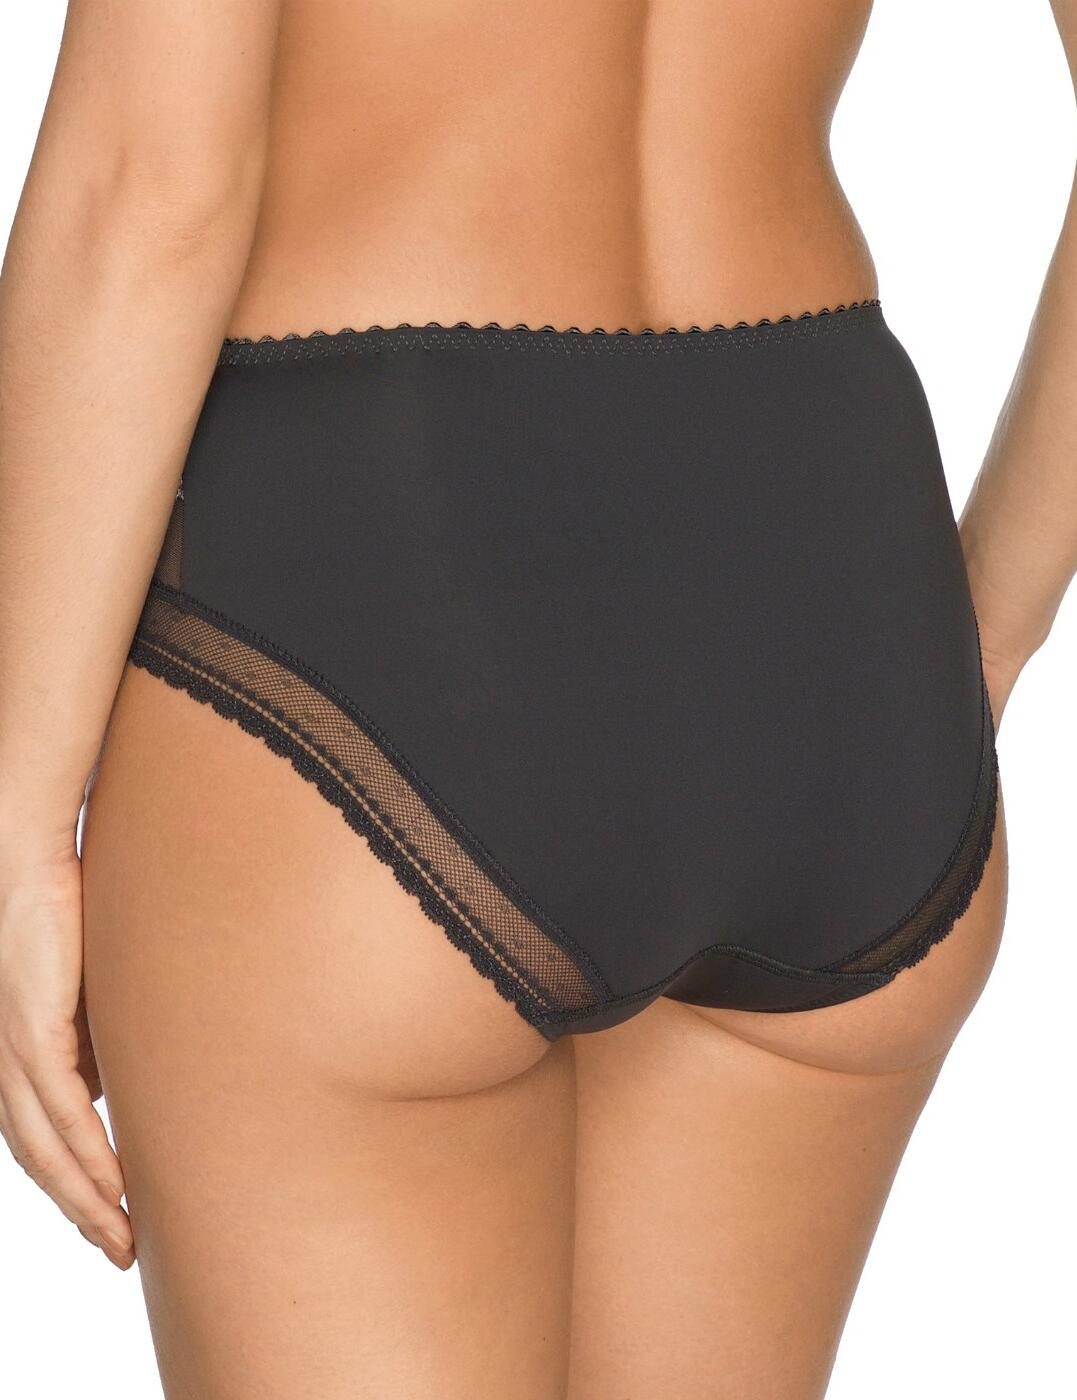 0562871 Prima Donna Ray Of Light Full Brief - 0562871 Gris Gris